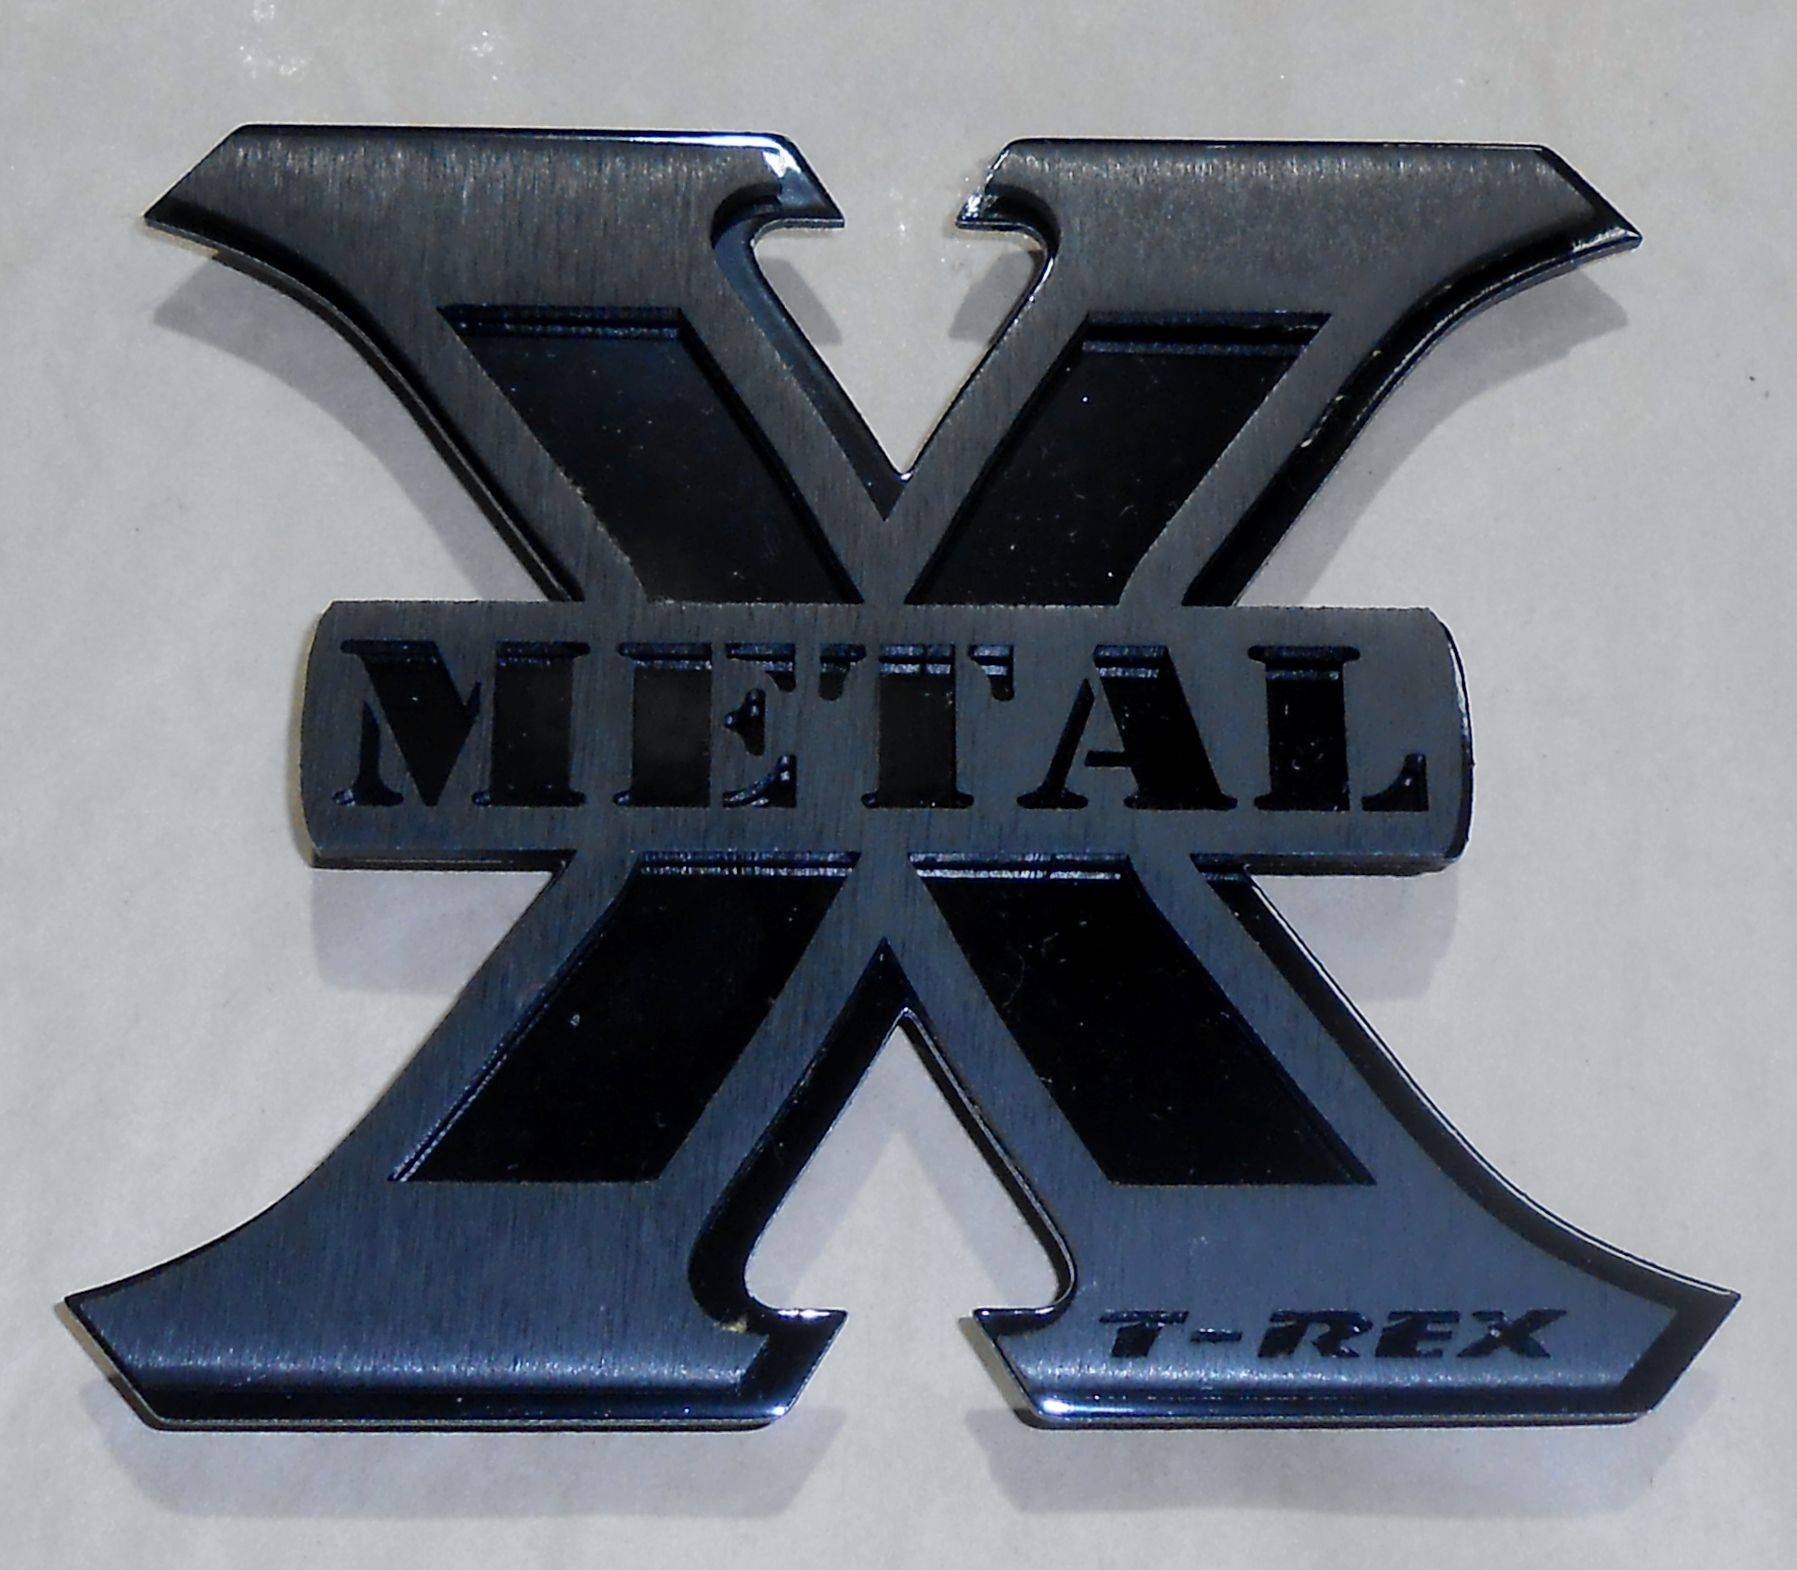 T-REX Grilles - Medium X-Metal Logo, 4 1/4 Inch Height x 5 Inch Wide, Black Anodized Front Plate with Gloss Black Back Plate